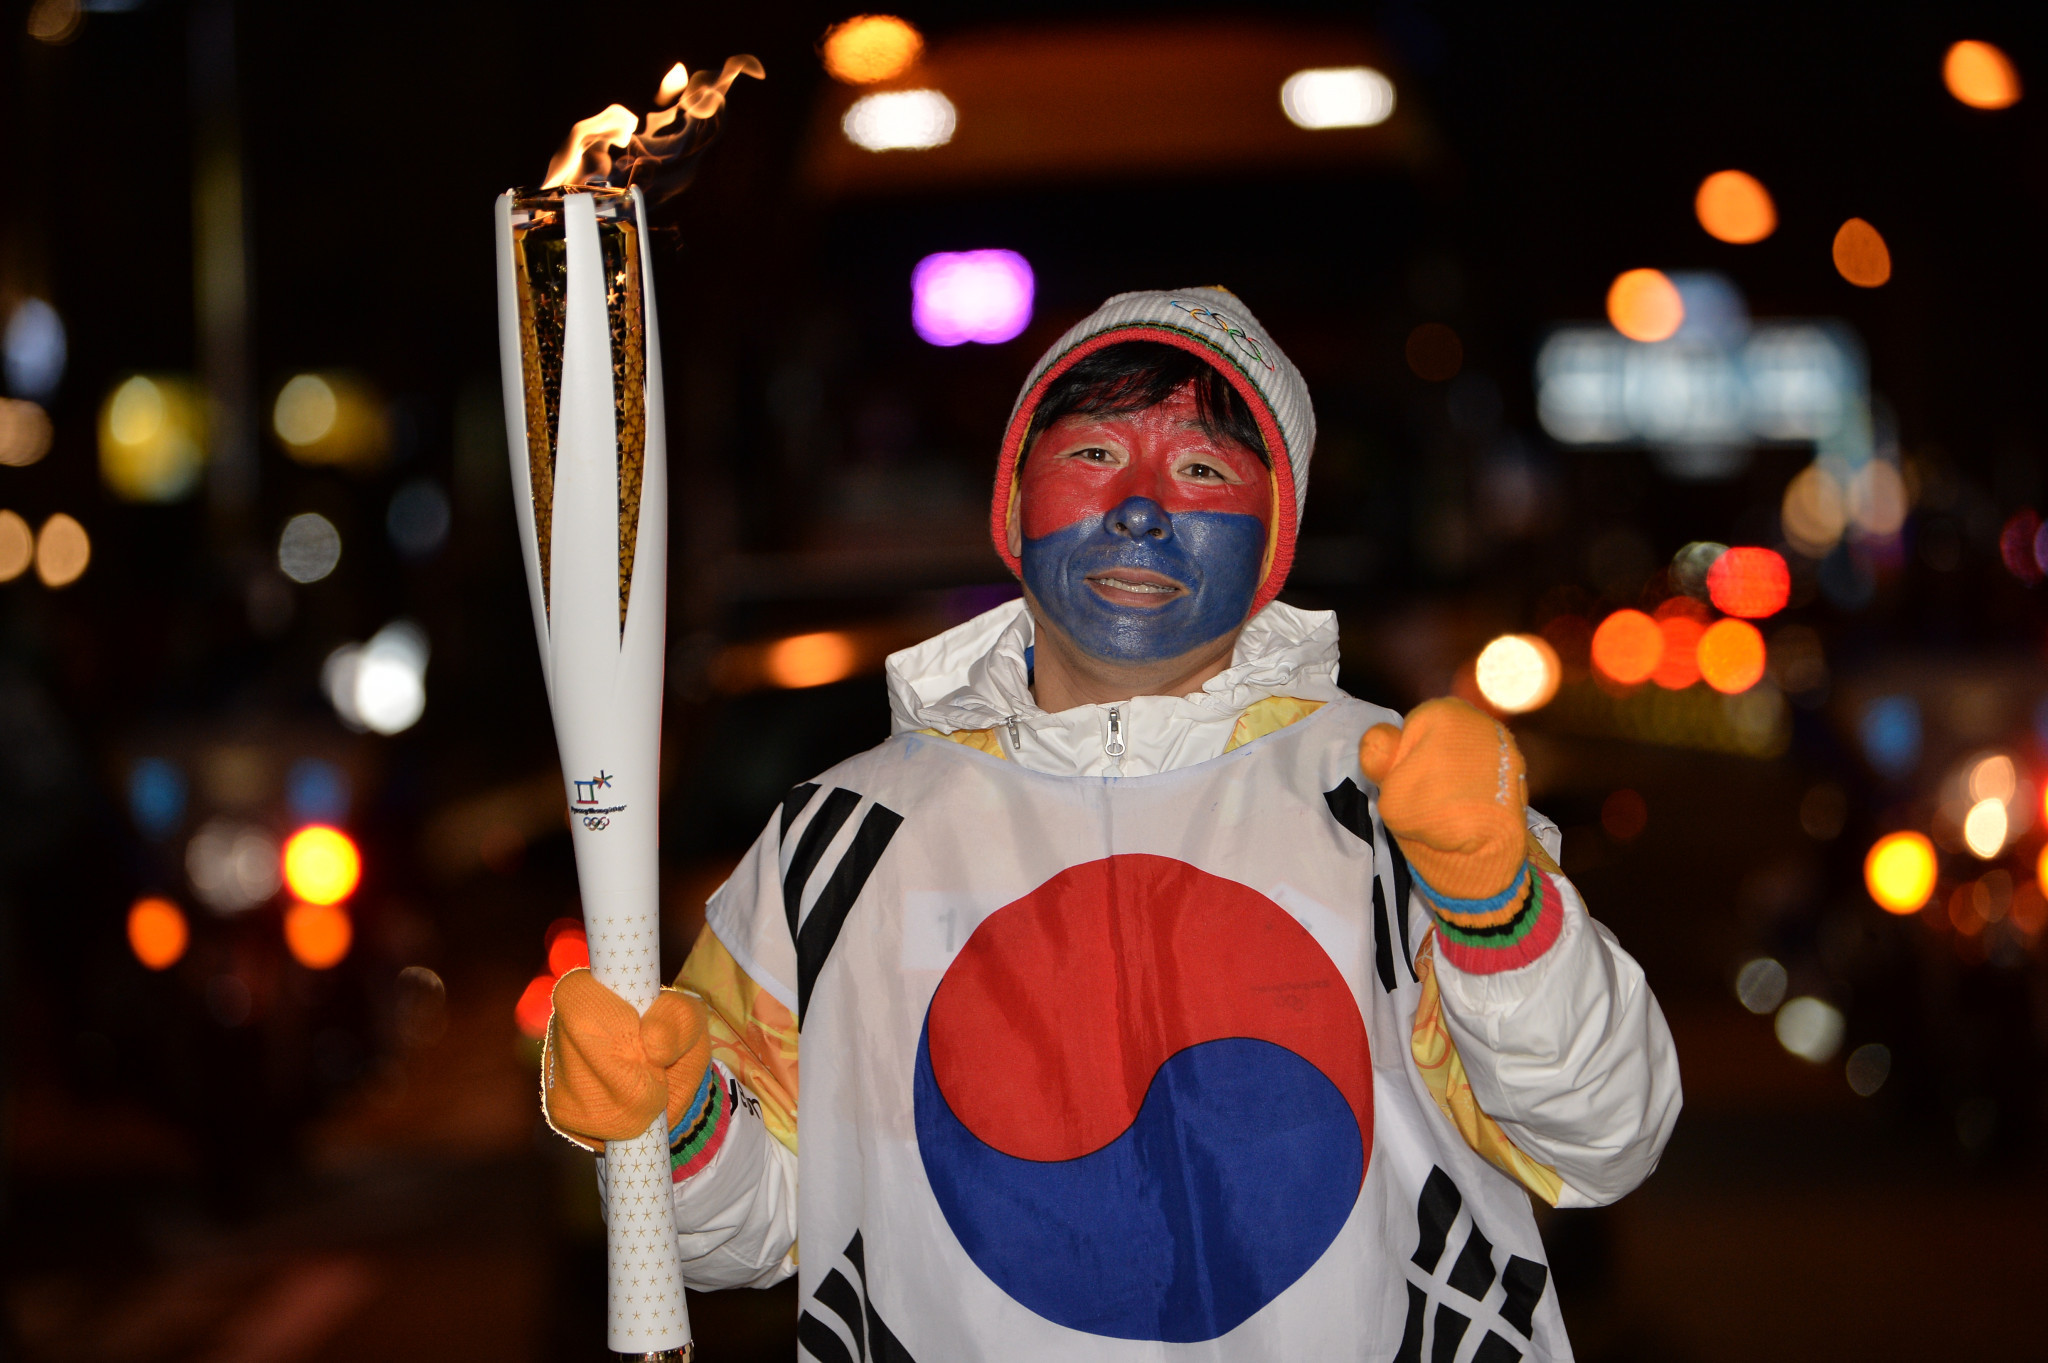 Torchbearers are extremely proud of their roles, as this gentleman proves with his painted face ©Pyeongchang2018